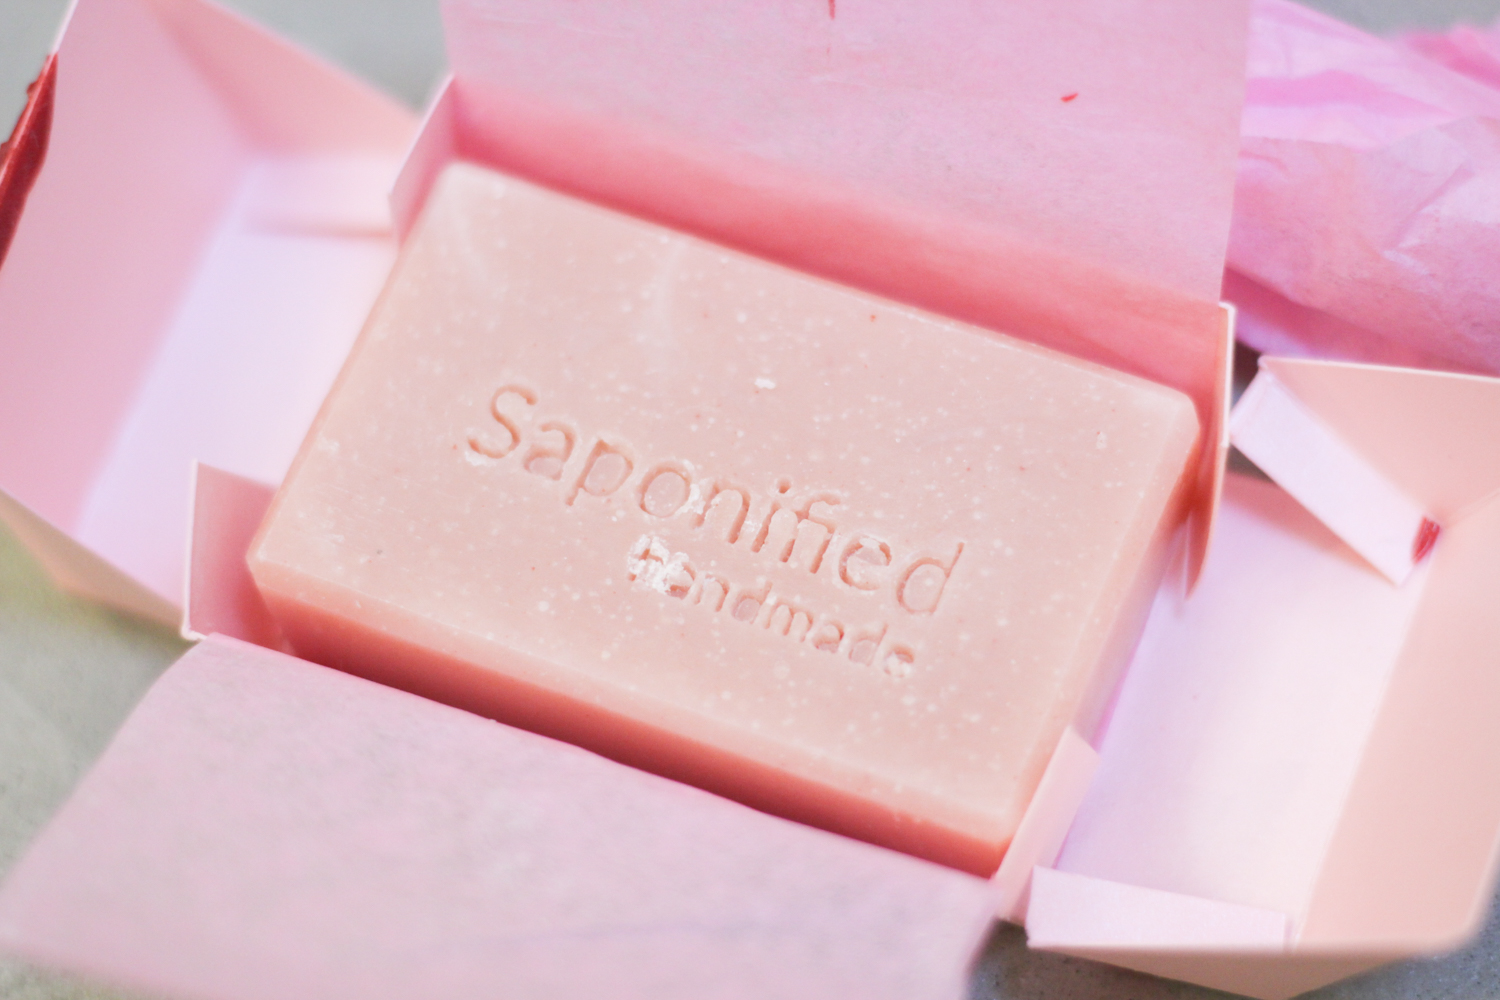 Saponified: Handmade Soaps